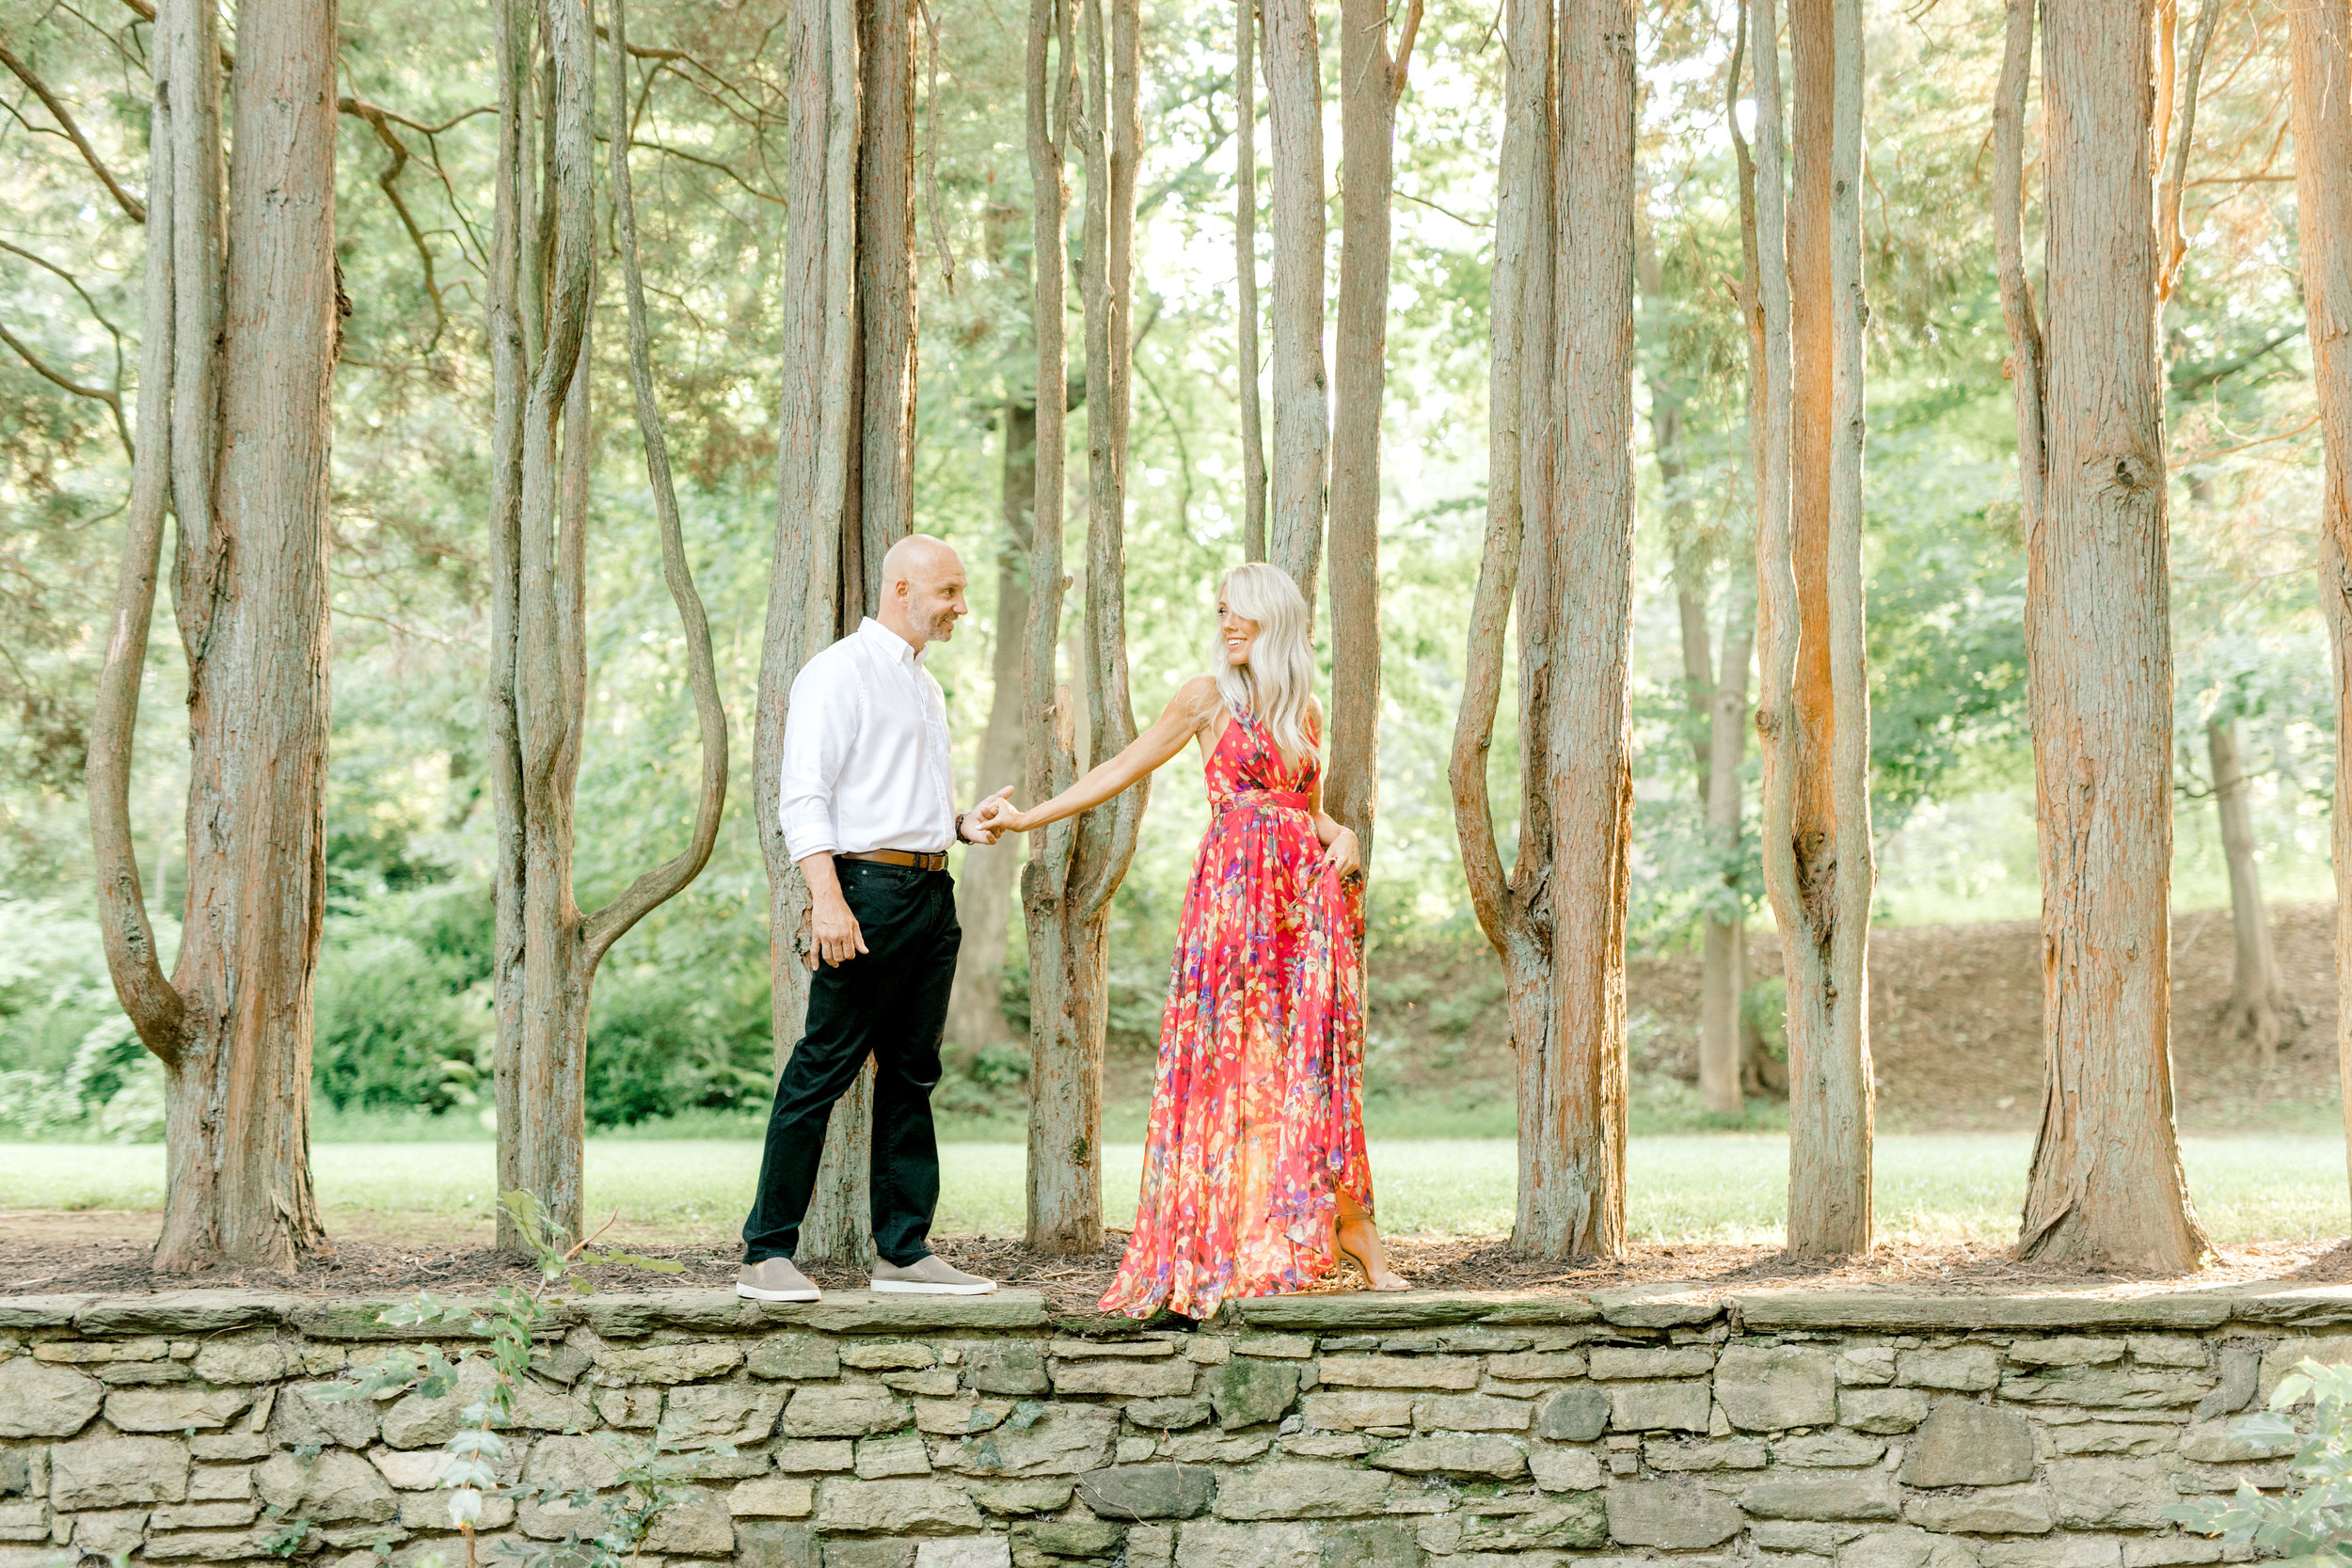 We can't get enough of the romantic vibes from Liz and Bill's romantic woodland sunset engagement session at Parque at Ridley Creek. And that red dress brings so much fire to their love!